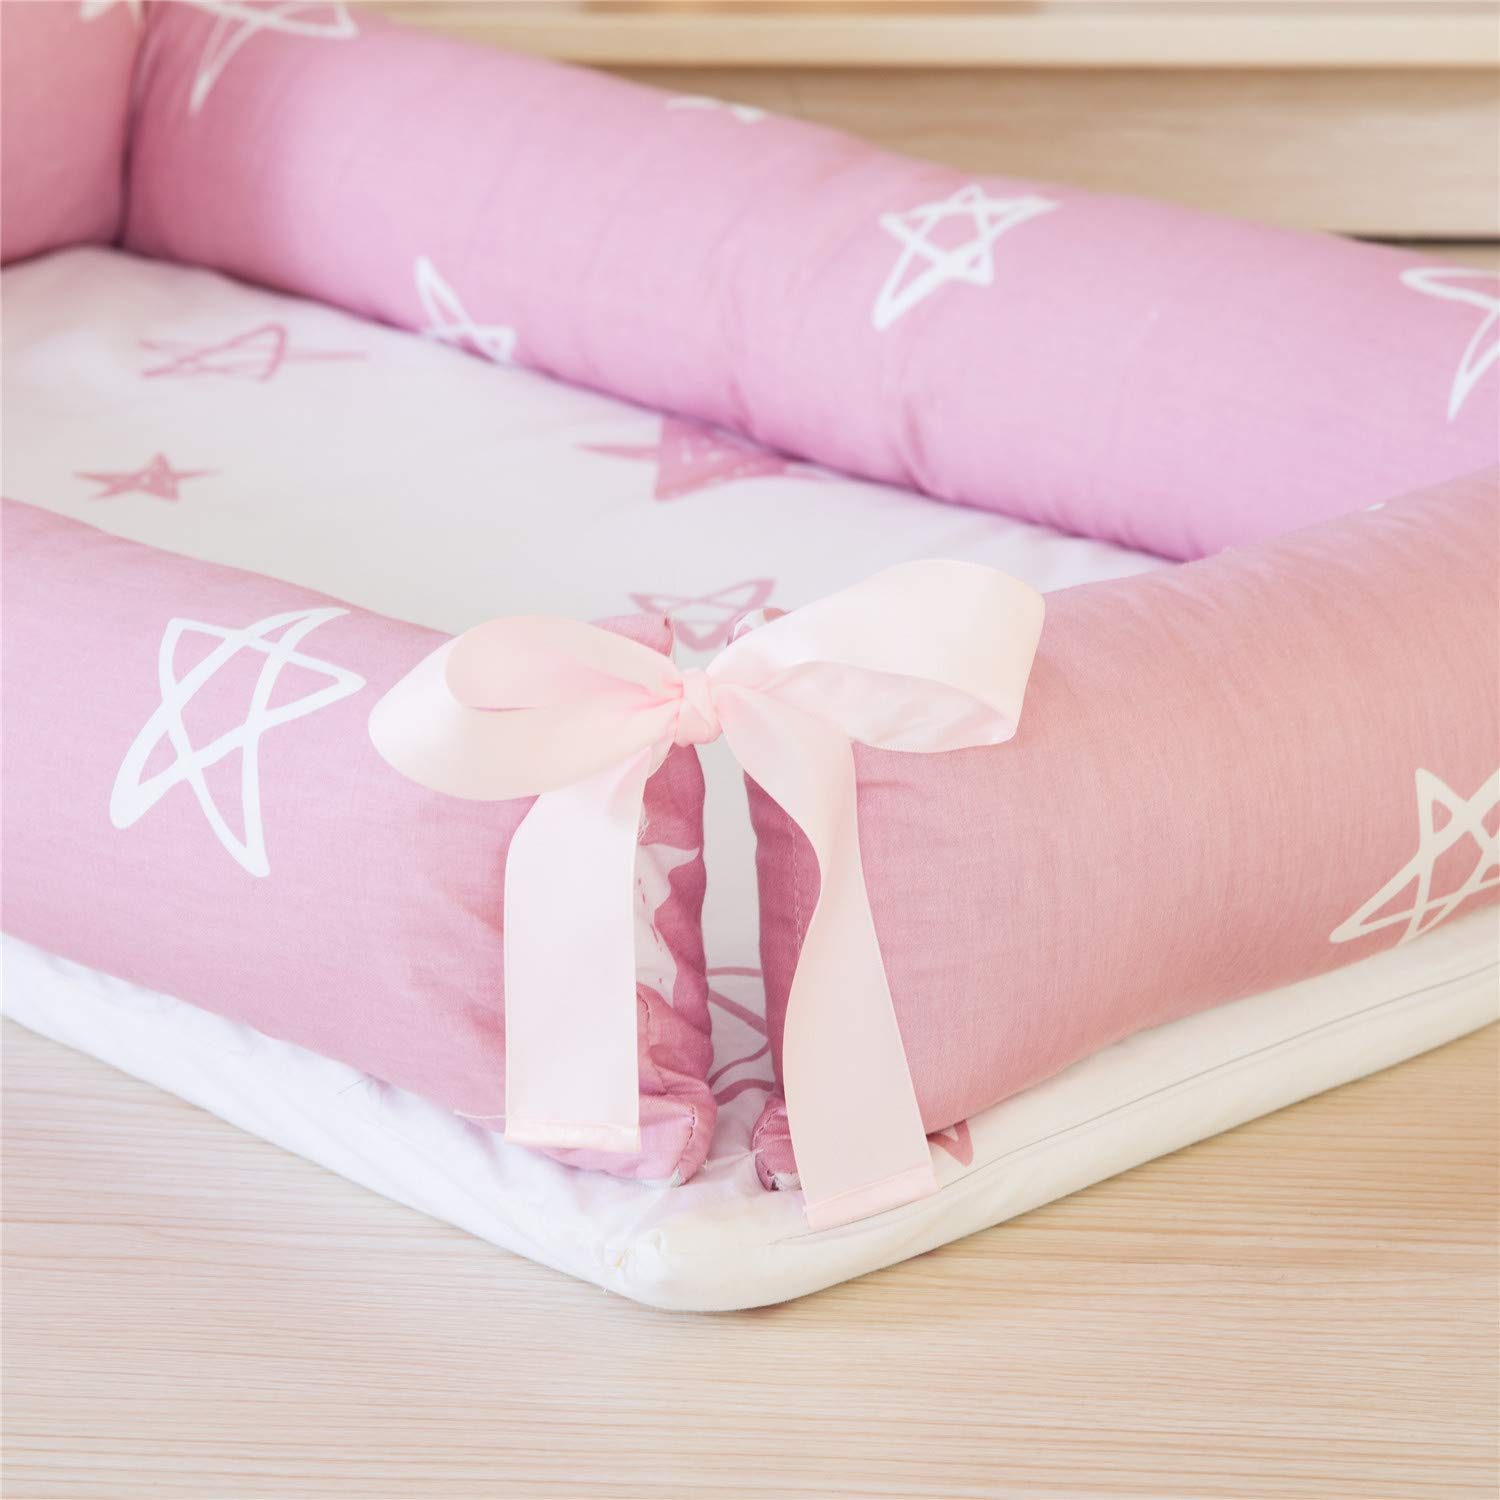 Breathable /& Hypoallergenic Co-Sleeping Baby Bed Abreeze Baby Bassinet for Bed -Starfish Pink Baby Lounger 100/% Cotton Portable Crib for Bedroom//Travel//Camping